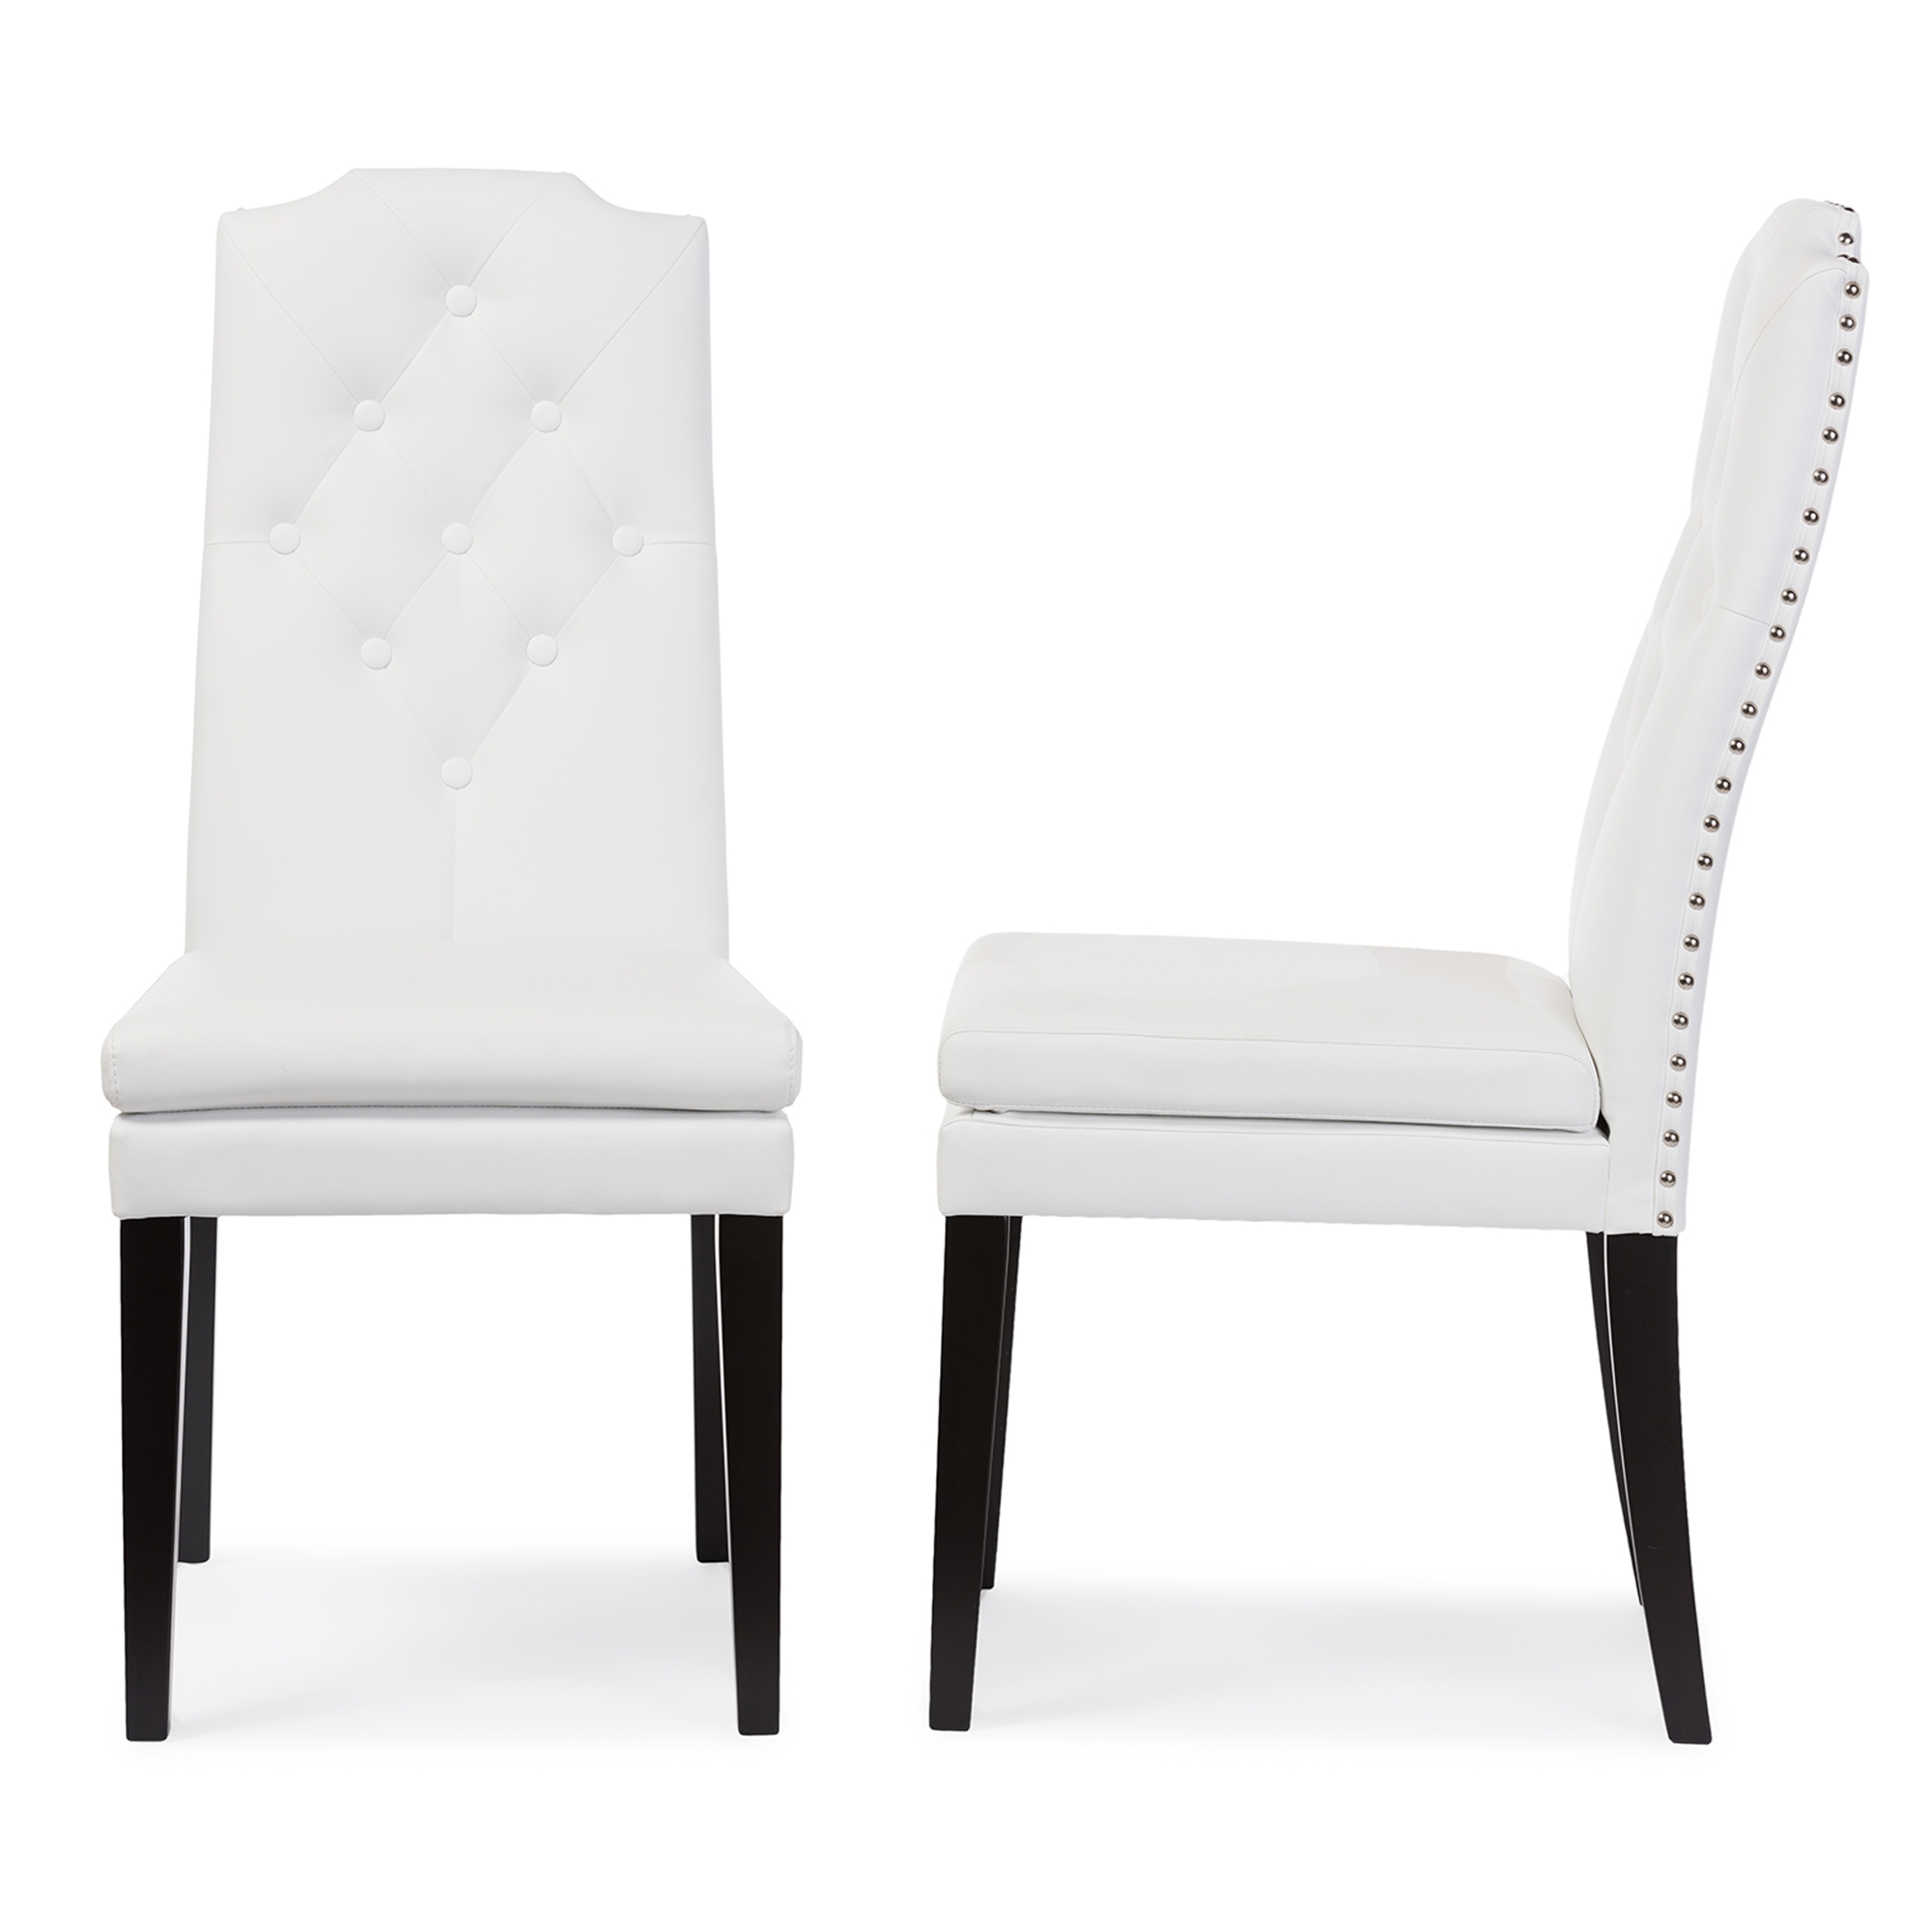 Beau Baxton Studio Dylin Modern And Contemporary White Faux Leather  Button Tufted Nail Heads Trim Dining Chair